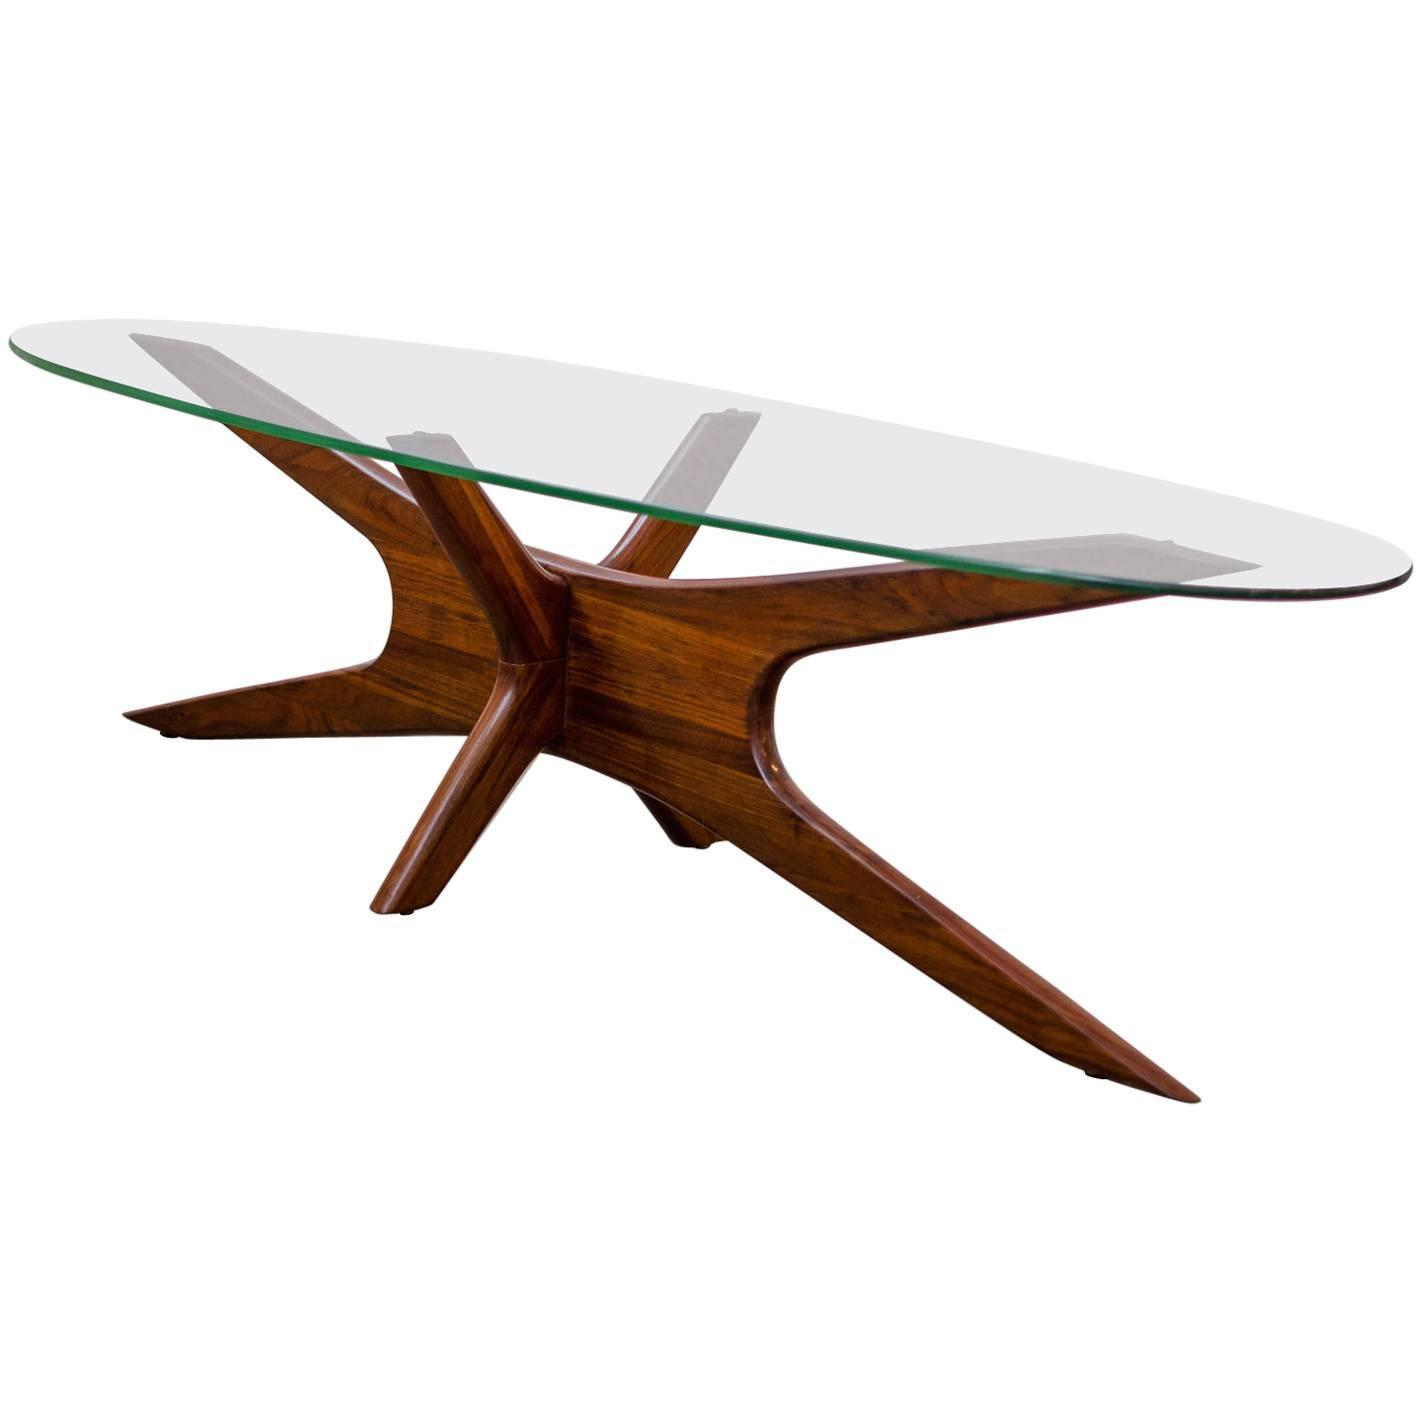 Adrian Pearsall Jacks Coffee Table 1960s at 1stdibs